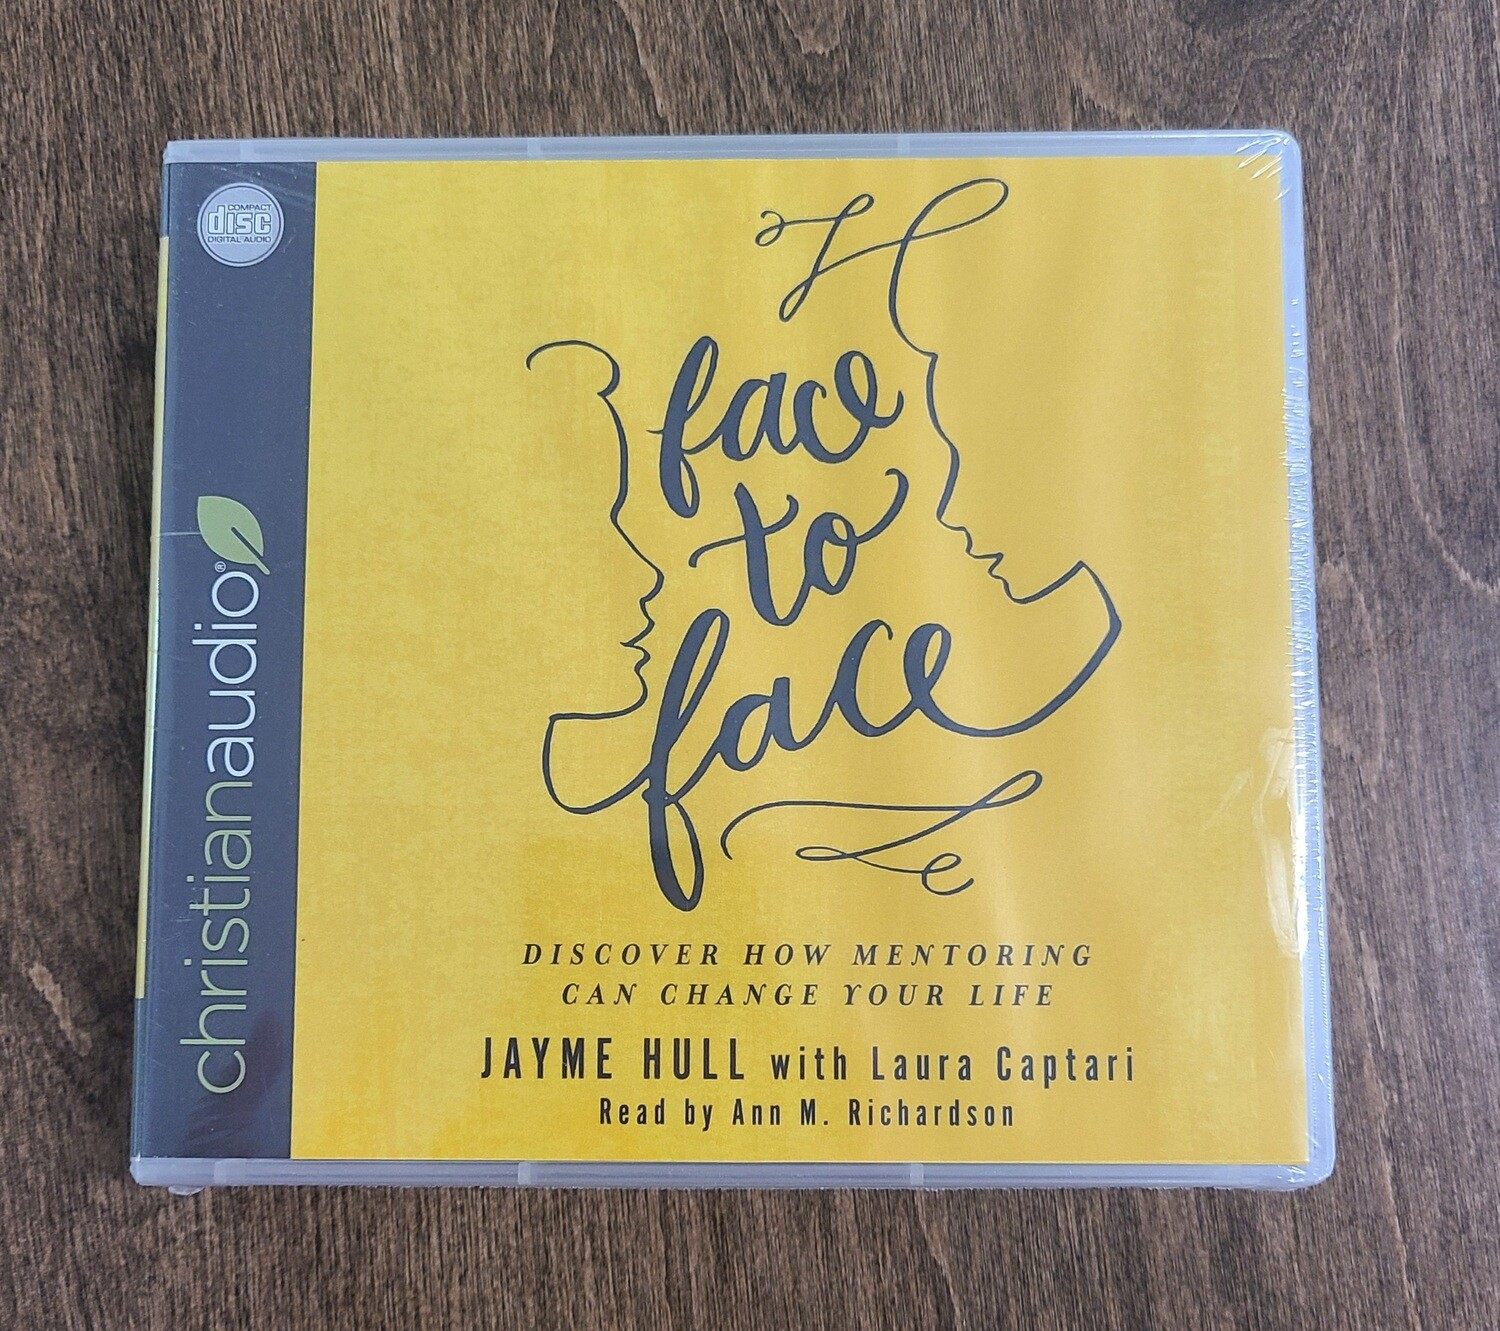 Face to Face: Discover How Mentoring can Change Your Life by Jayme Hull with Laura Captari and Ann M. Richardson